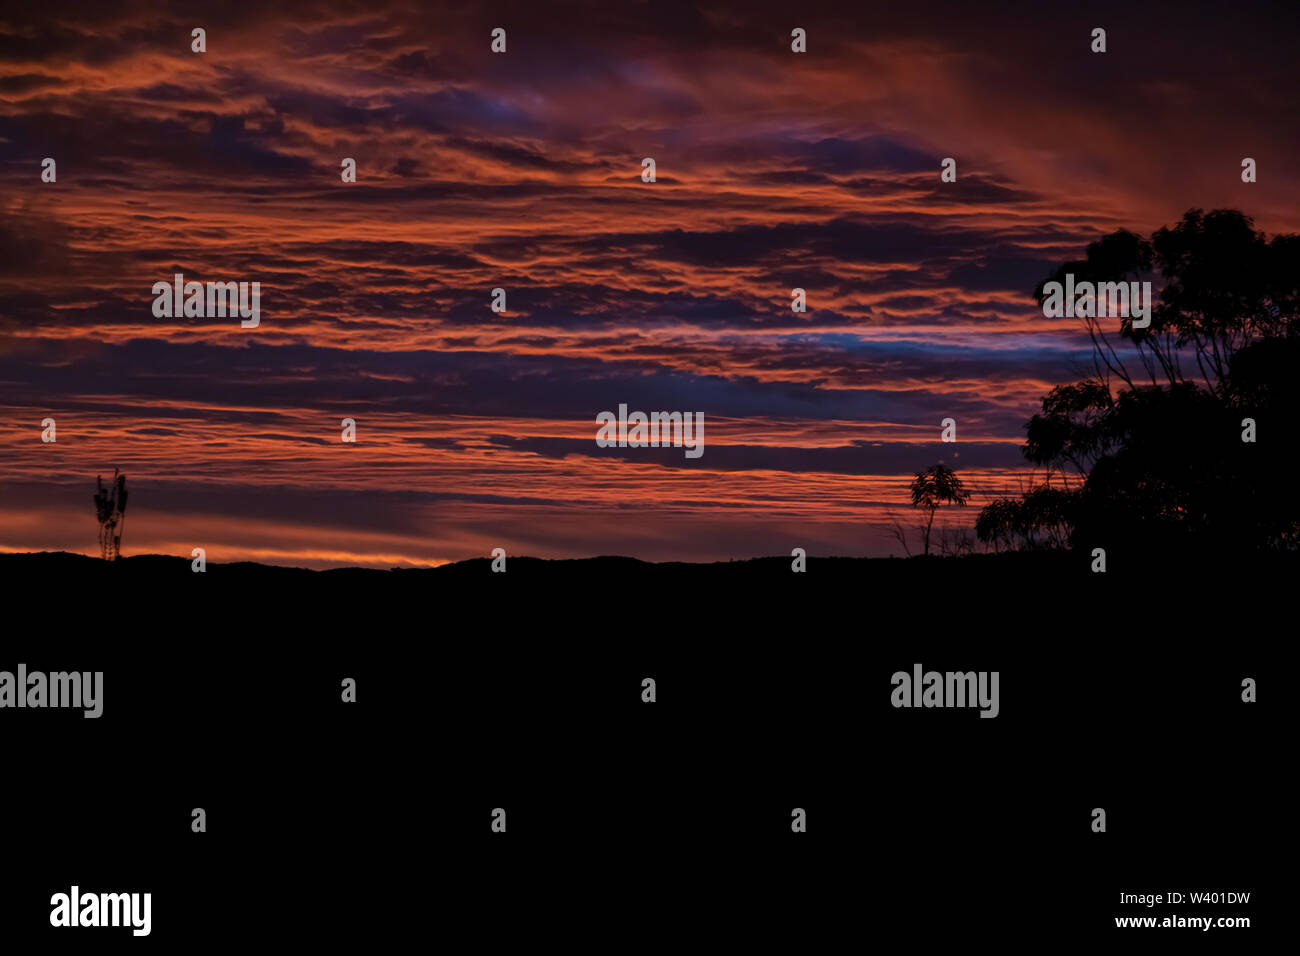 Vibrant red sunset and clouds across a Gully. - Stock Image